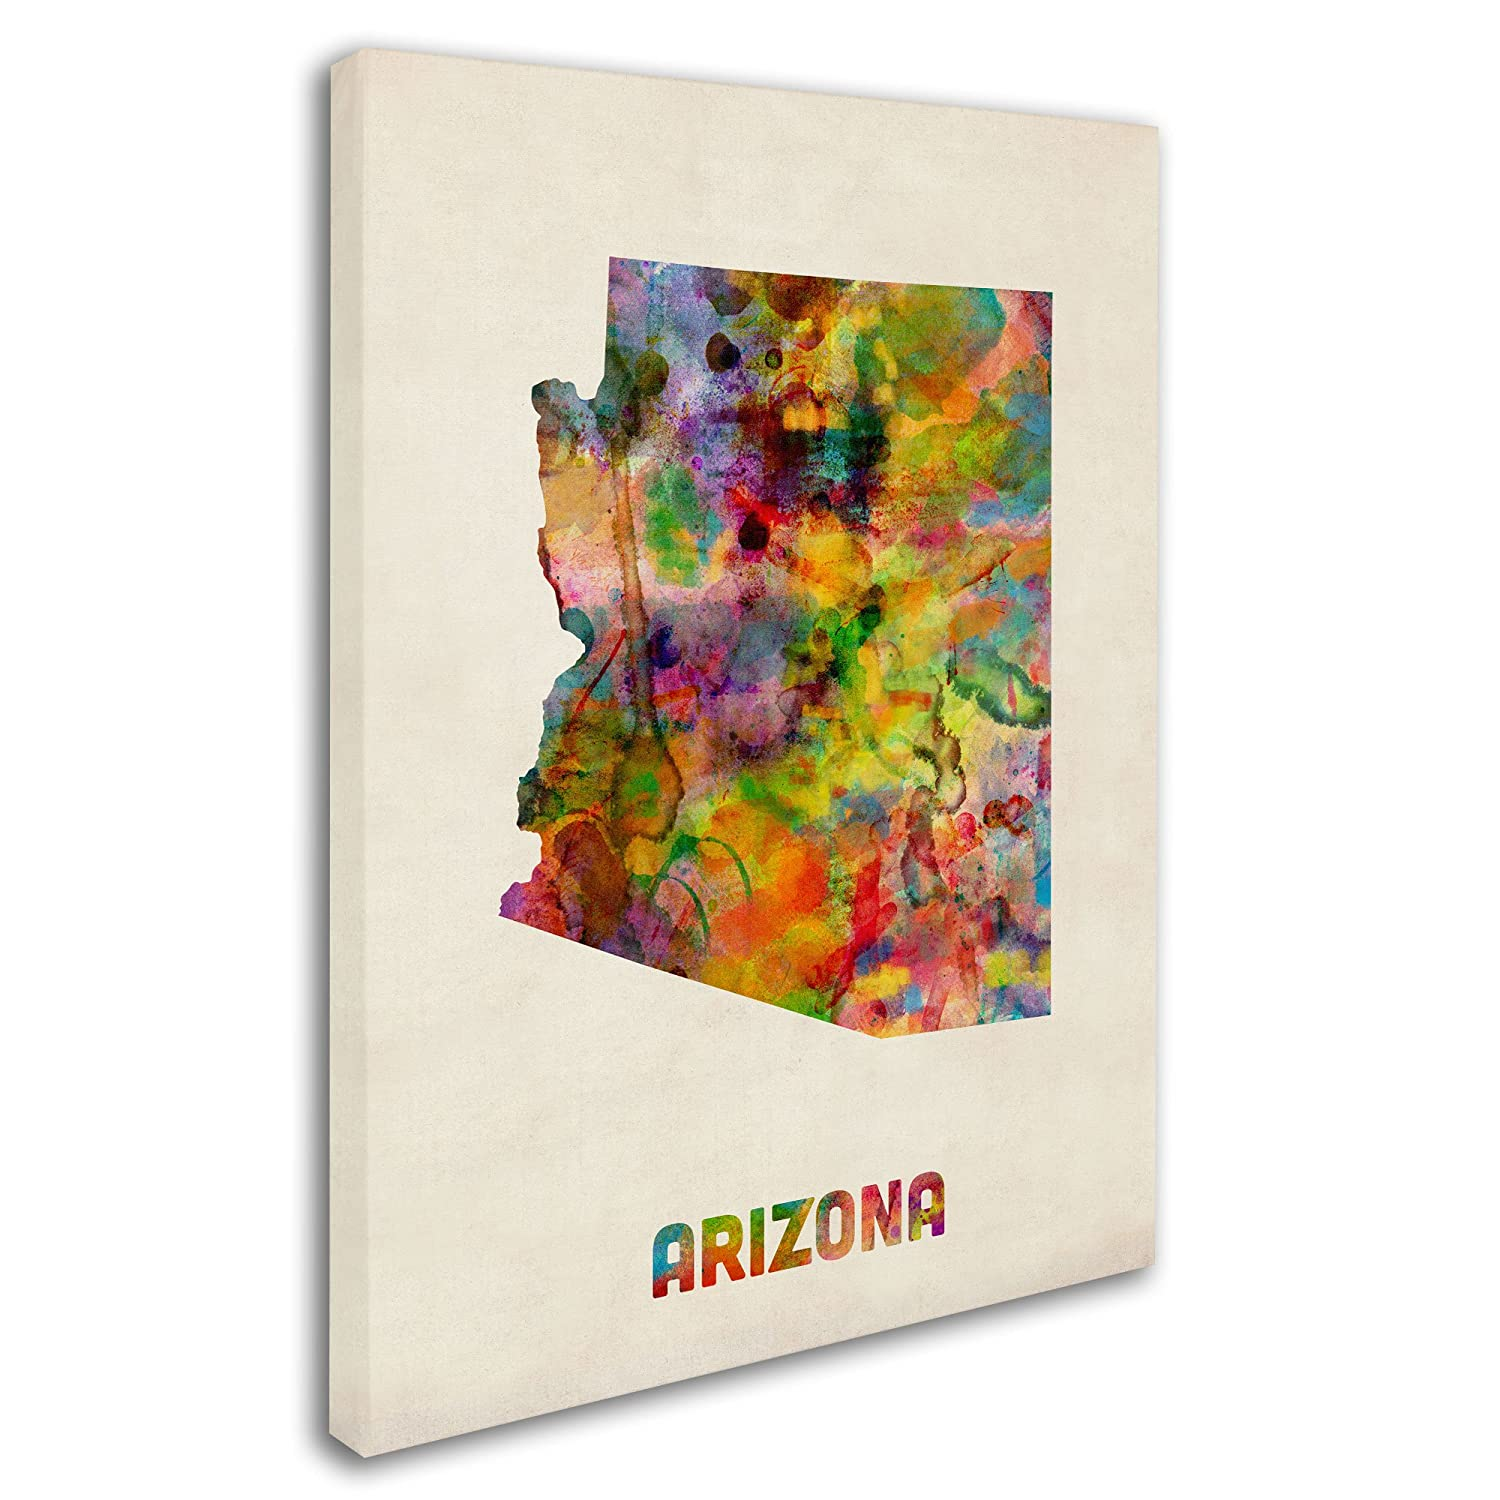 Arizona Map by Michael Tompsett, 24 by 32-Inch Canvas Wall Art